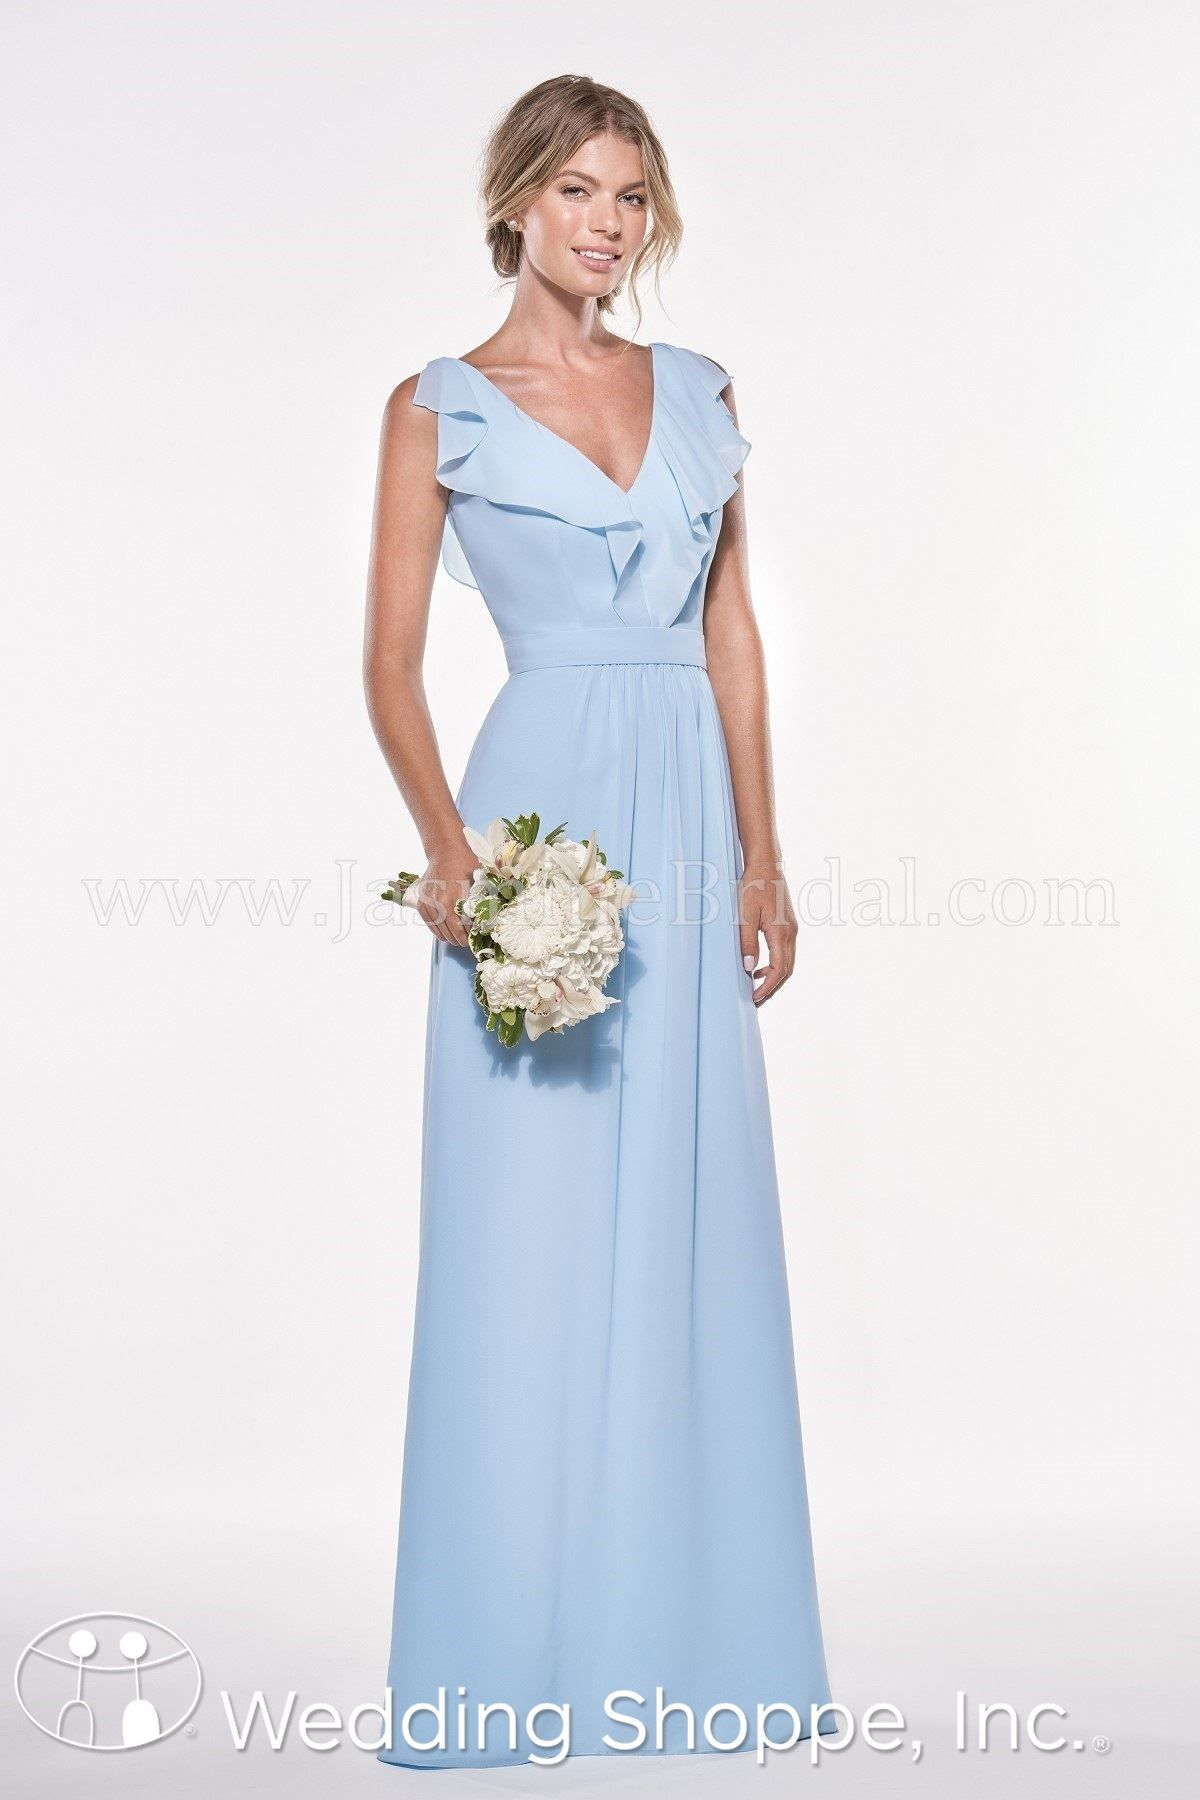 Jasmine bridesmaid dress p196007 jasmine wedding and weddings jasmine bridesmaid dress p196007 in cornflower deep sea or starry saphire ombrellifo Images